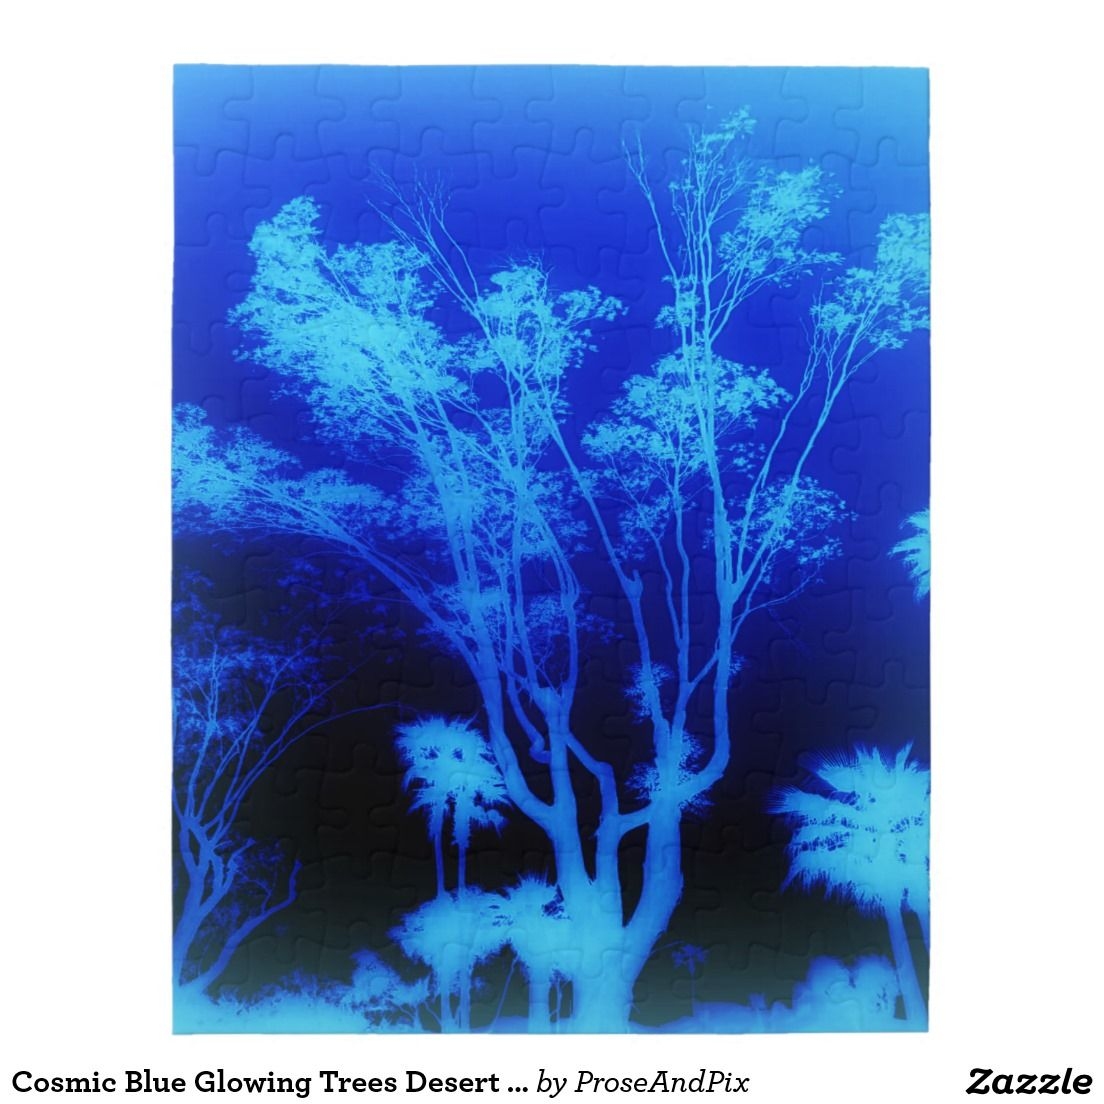 Cosmic Blue Glowing Trees Desert Photography Art Jigsaw Puzzle